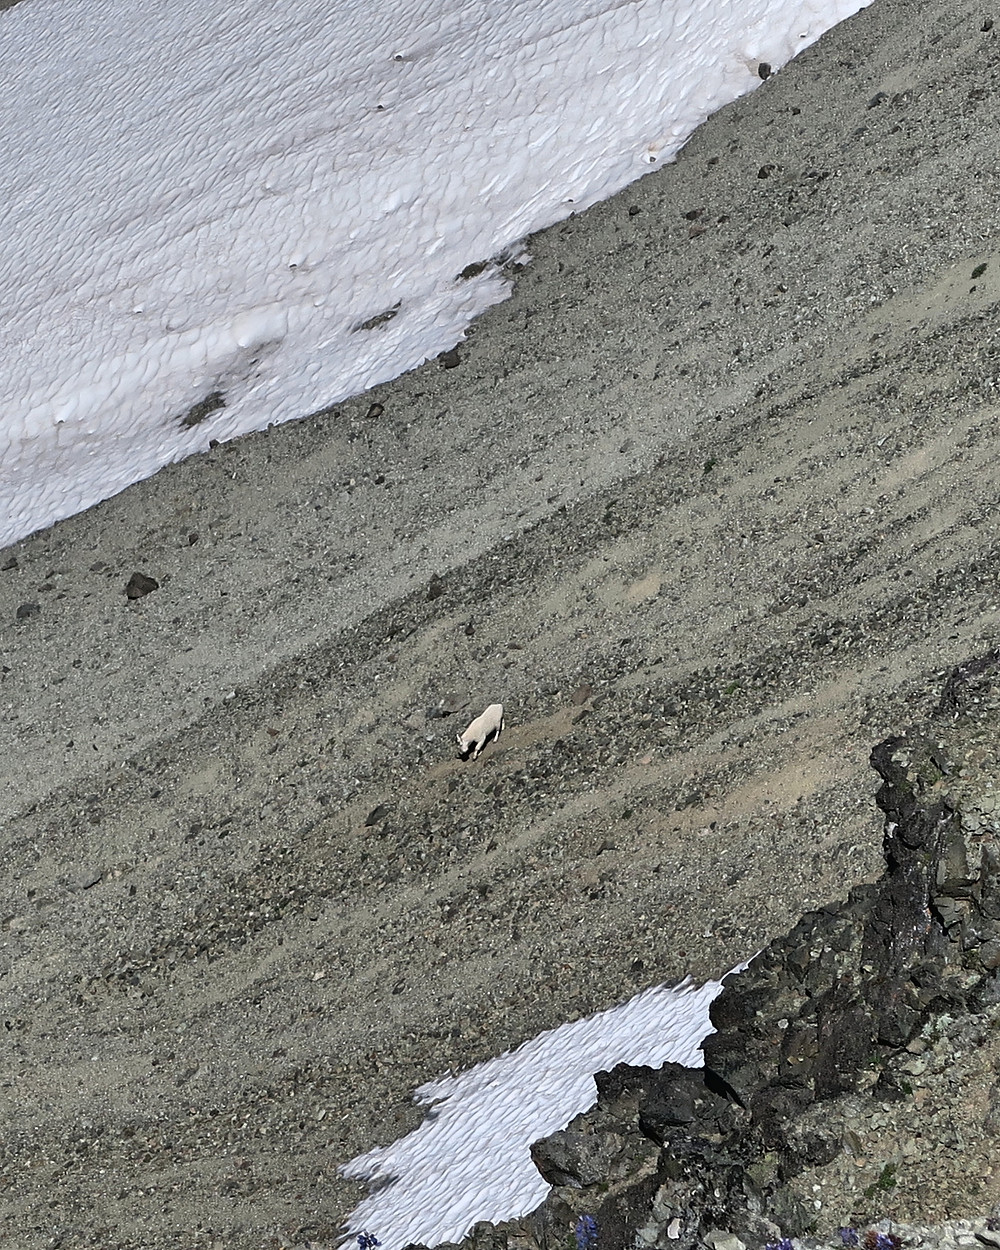 White patches of snow, gray rocks, and a distant dirty white mountain goat.